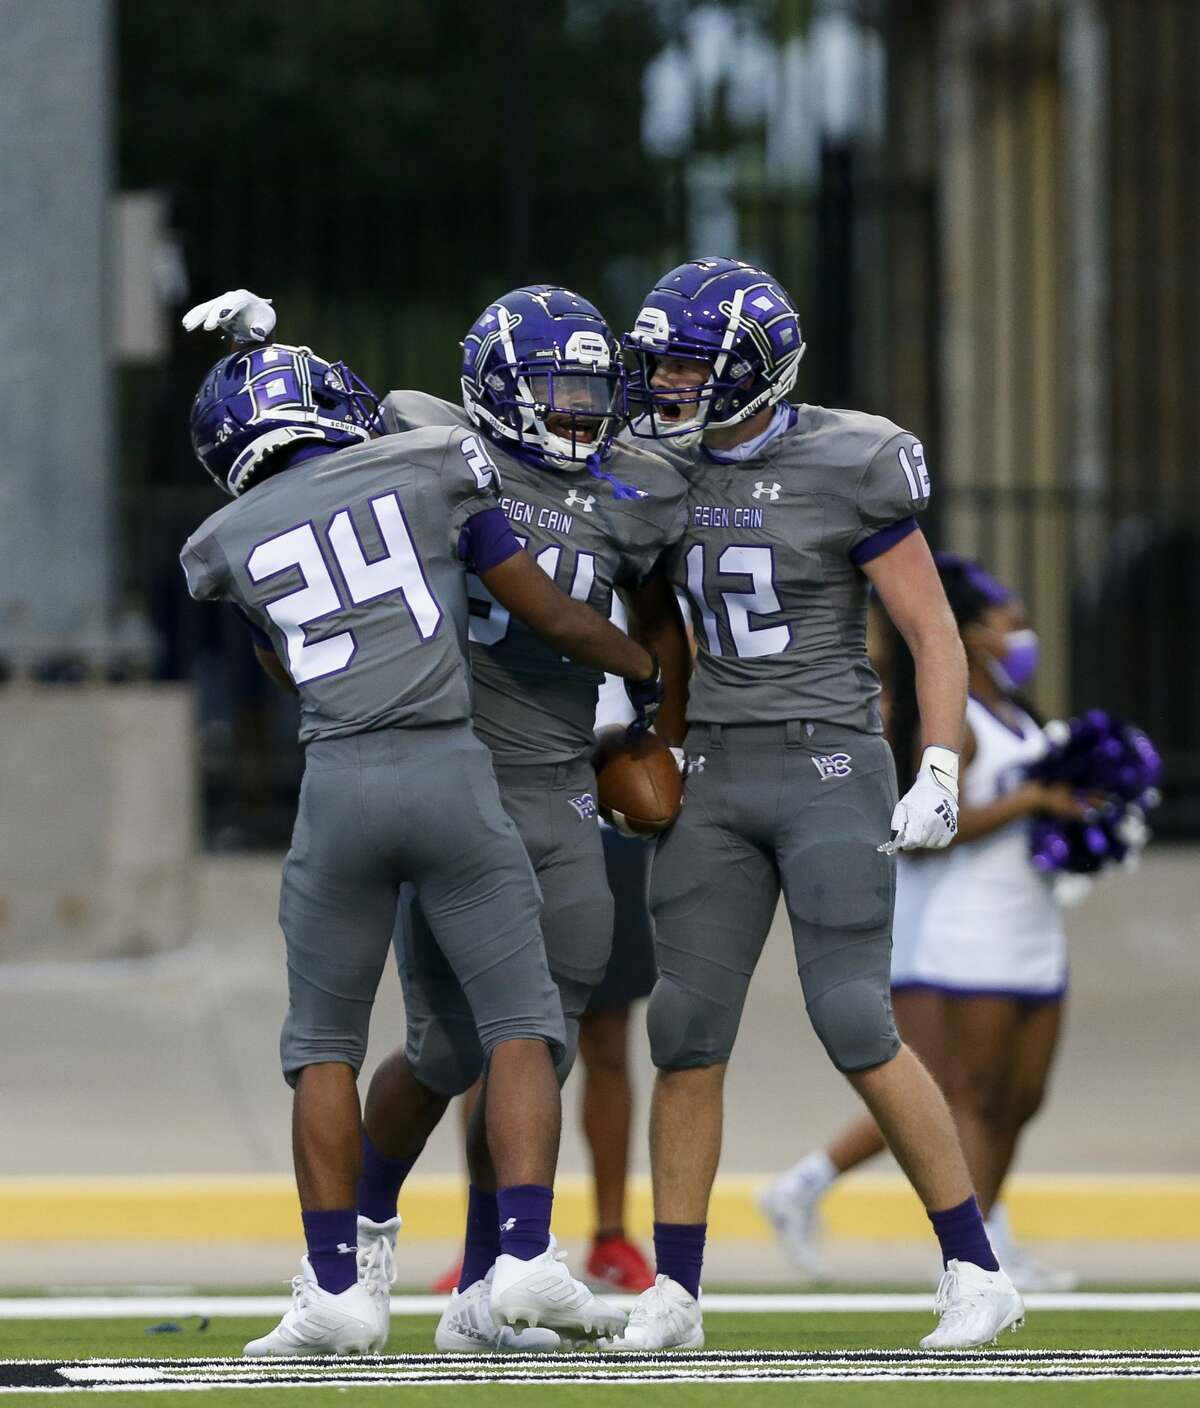 Klein Cain running back Aaron Jordan (34) celebrates with teammates after scoring a rushing touchdown against Bridgeland at Cy-Fair FCU Stadium on Thursday, Sept. 24, 2020, in Cypress, Texas.